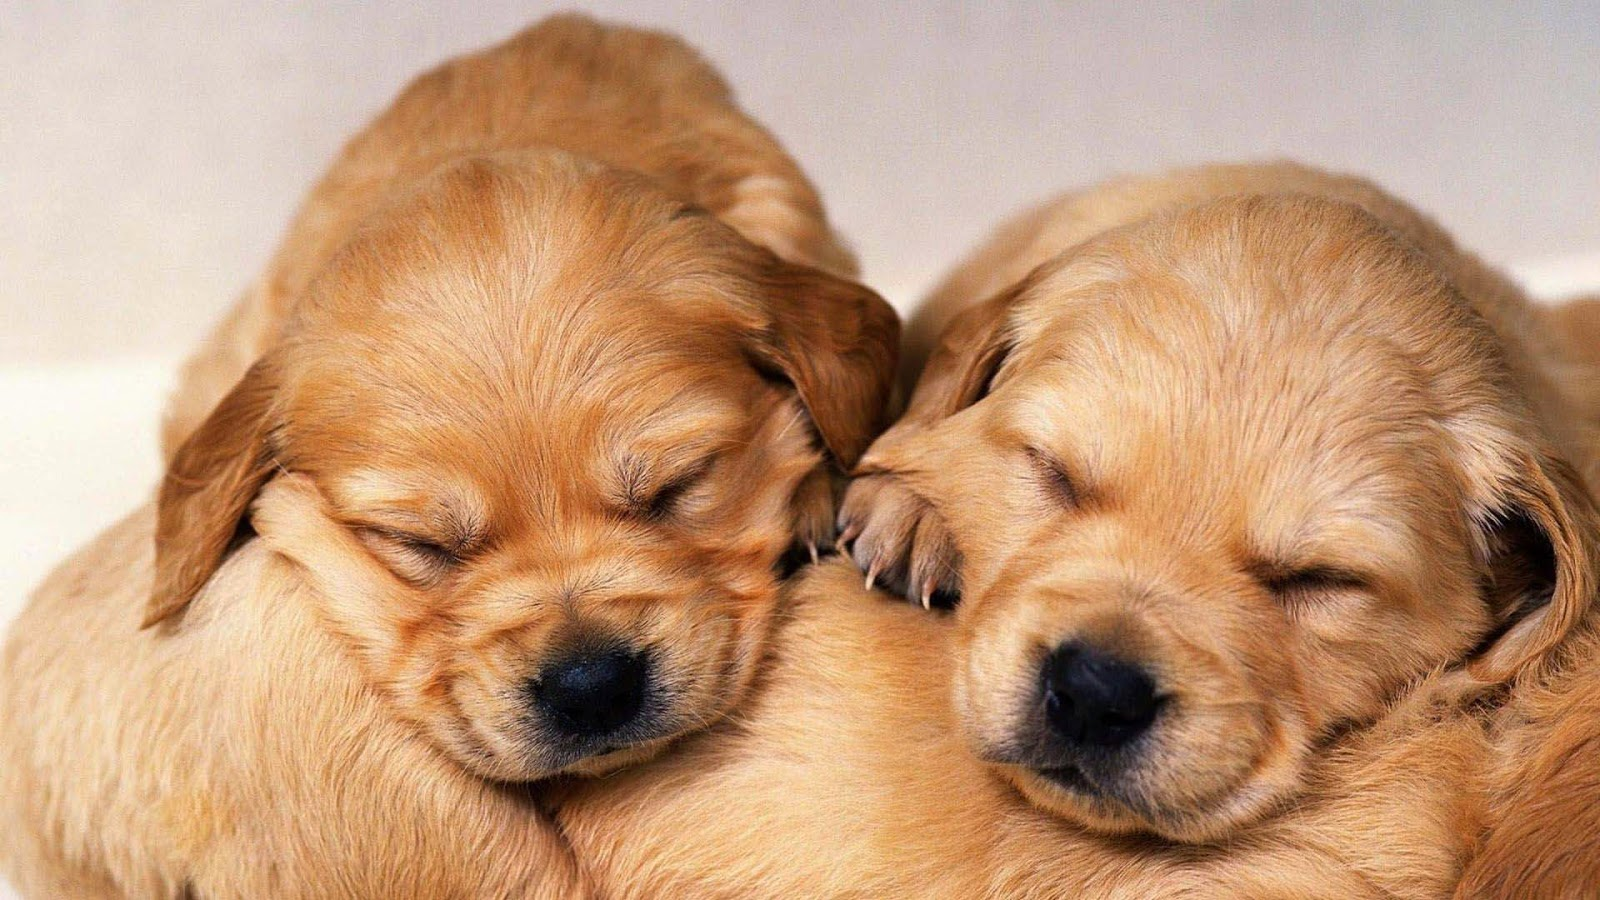 Cute Golden Retriever Puppies Wallpaper Image Free Hd Wallpaper